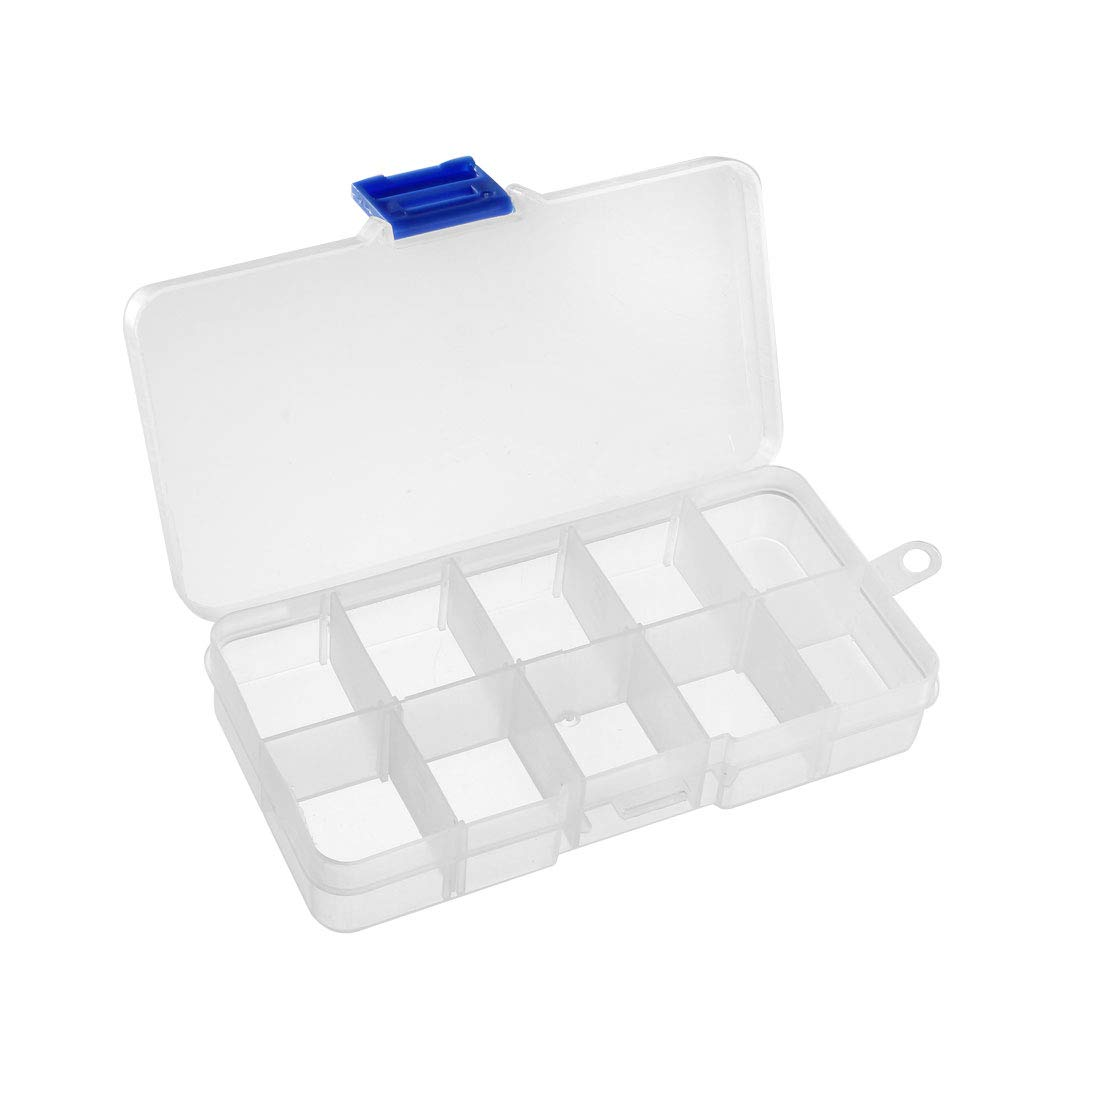 uxcell Component Storage Box PP Adjustable 8 Grids Electronic Component Containers Tool Boxes Clear White 230x160x60mm